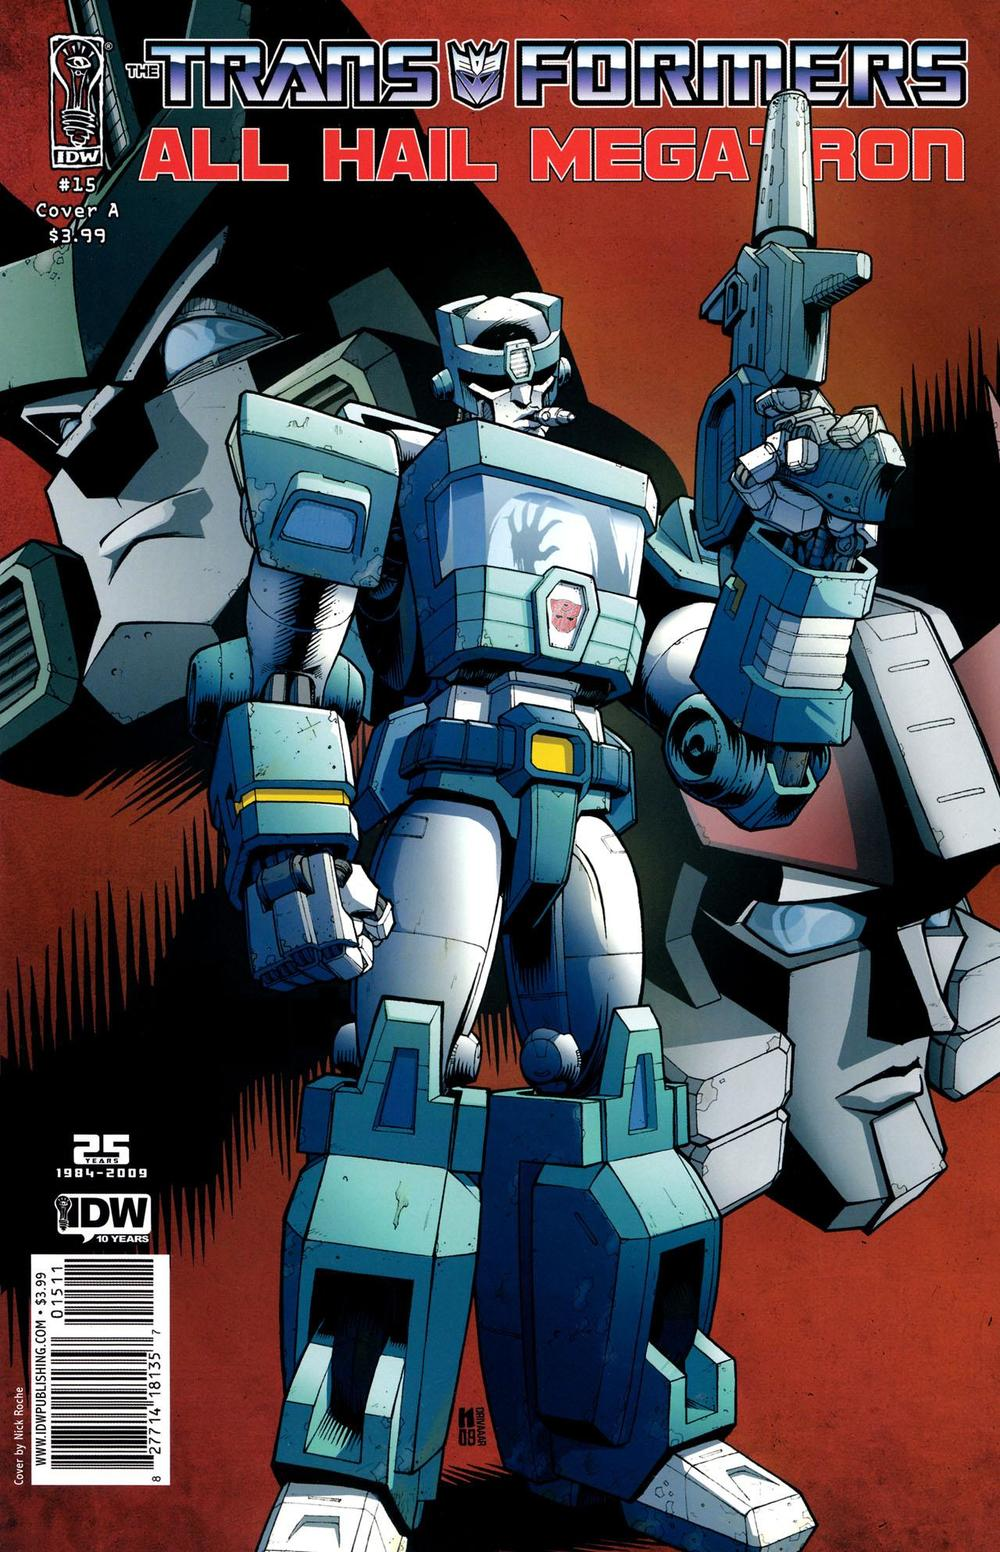 Cover A: Nick Roche and Kris Carter